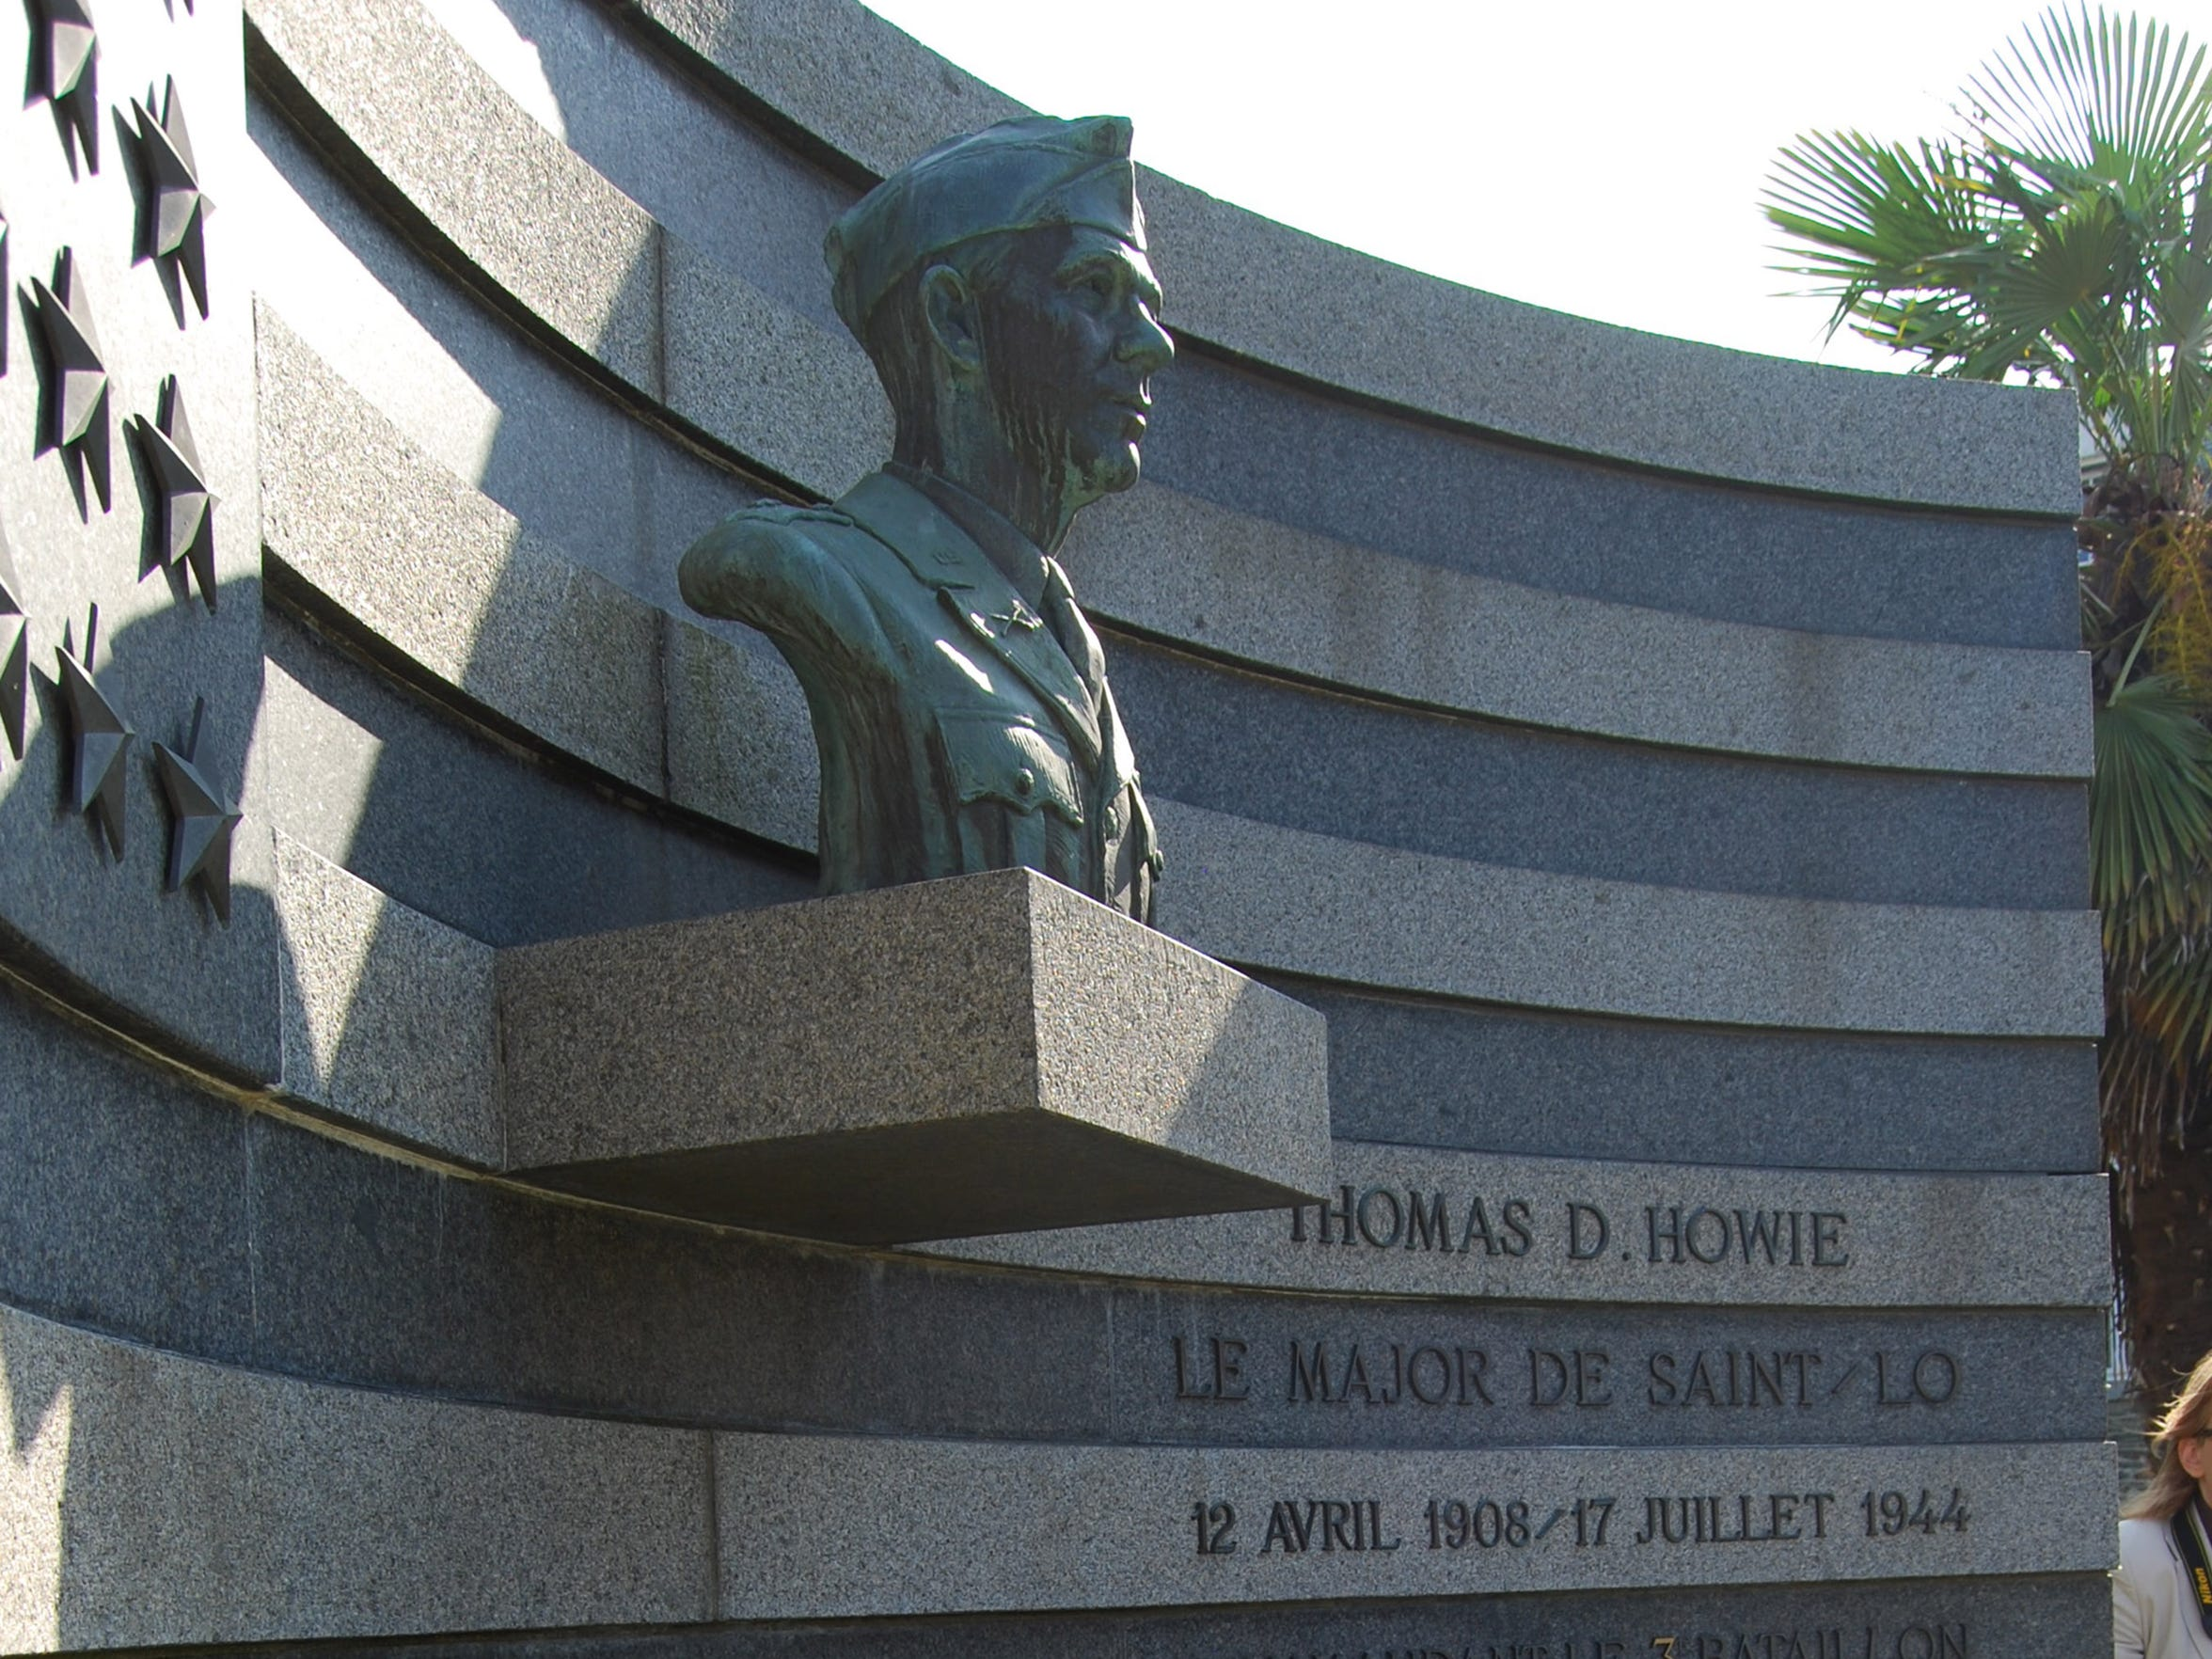 """The monument honoring Thomas D. Howie, aka. """"The Major of St. Lo,"""" in St. Lo, France."""